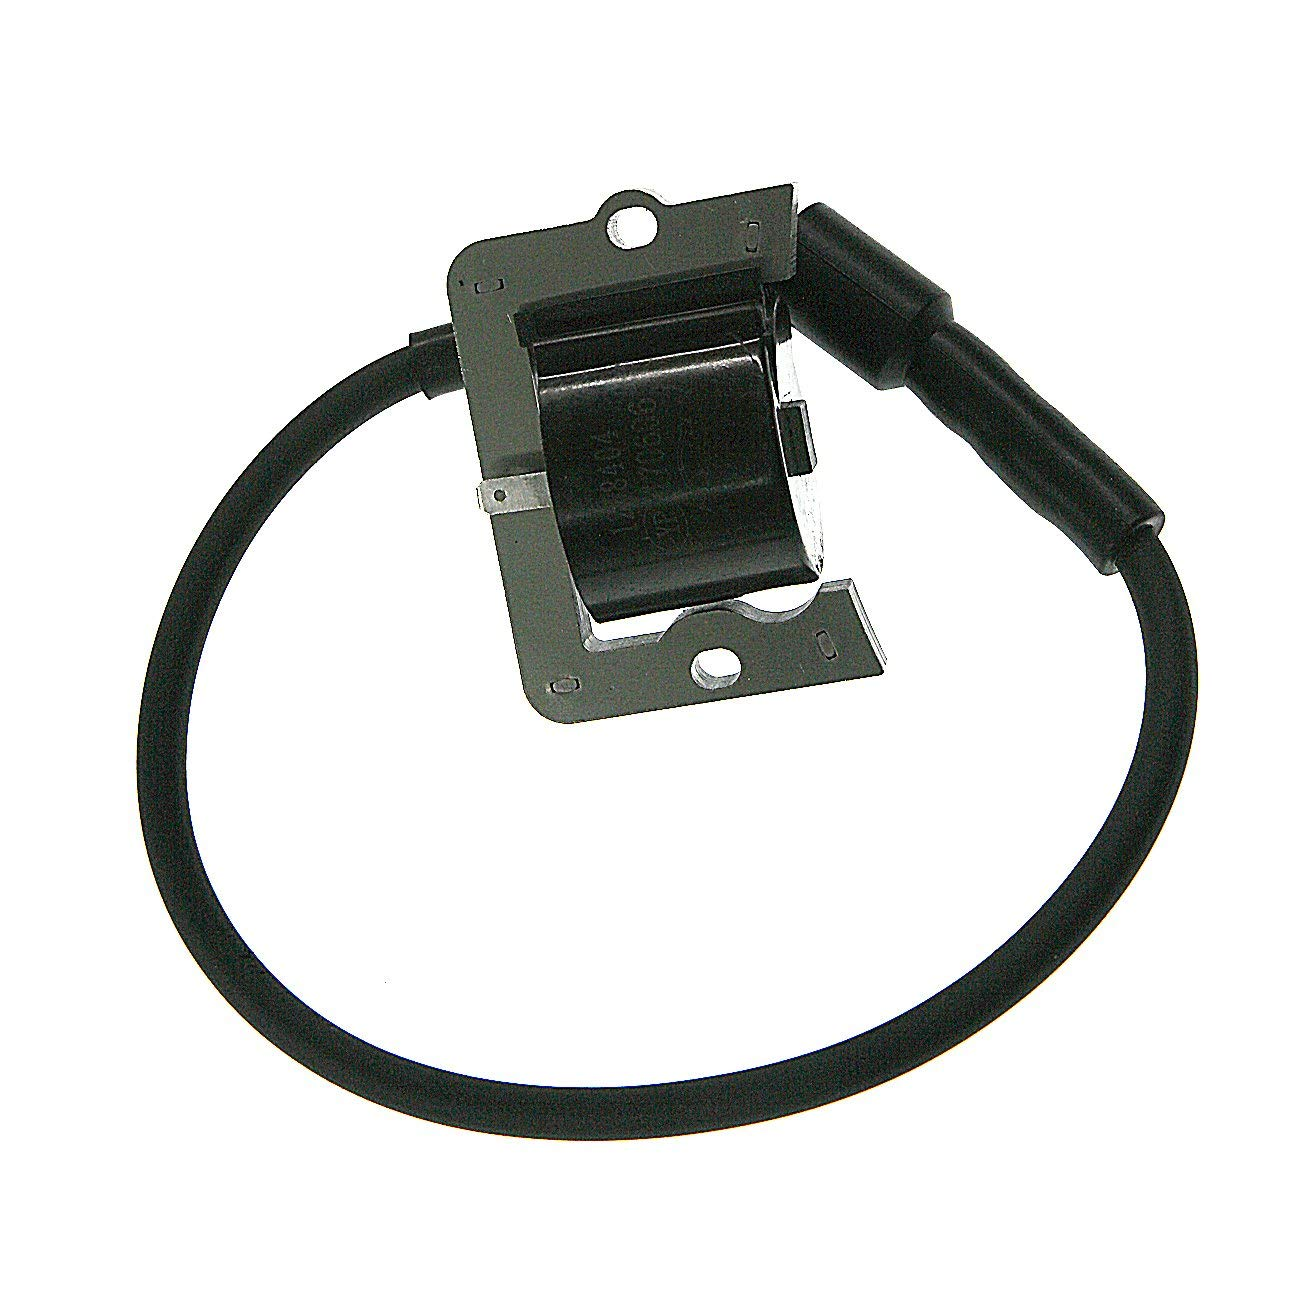 Sthus Ignition Coil For Kohler 12-584-04-S 12 584 04-S Stens 055-229 055-465 12 584 01